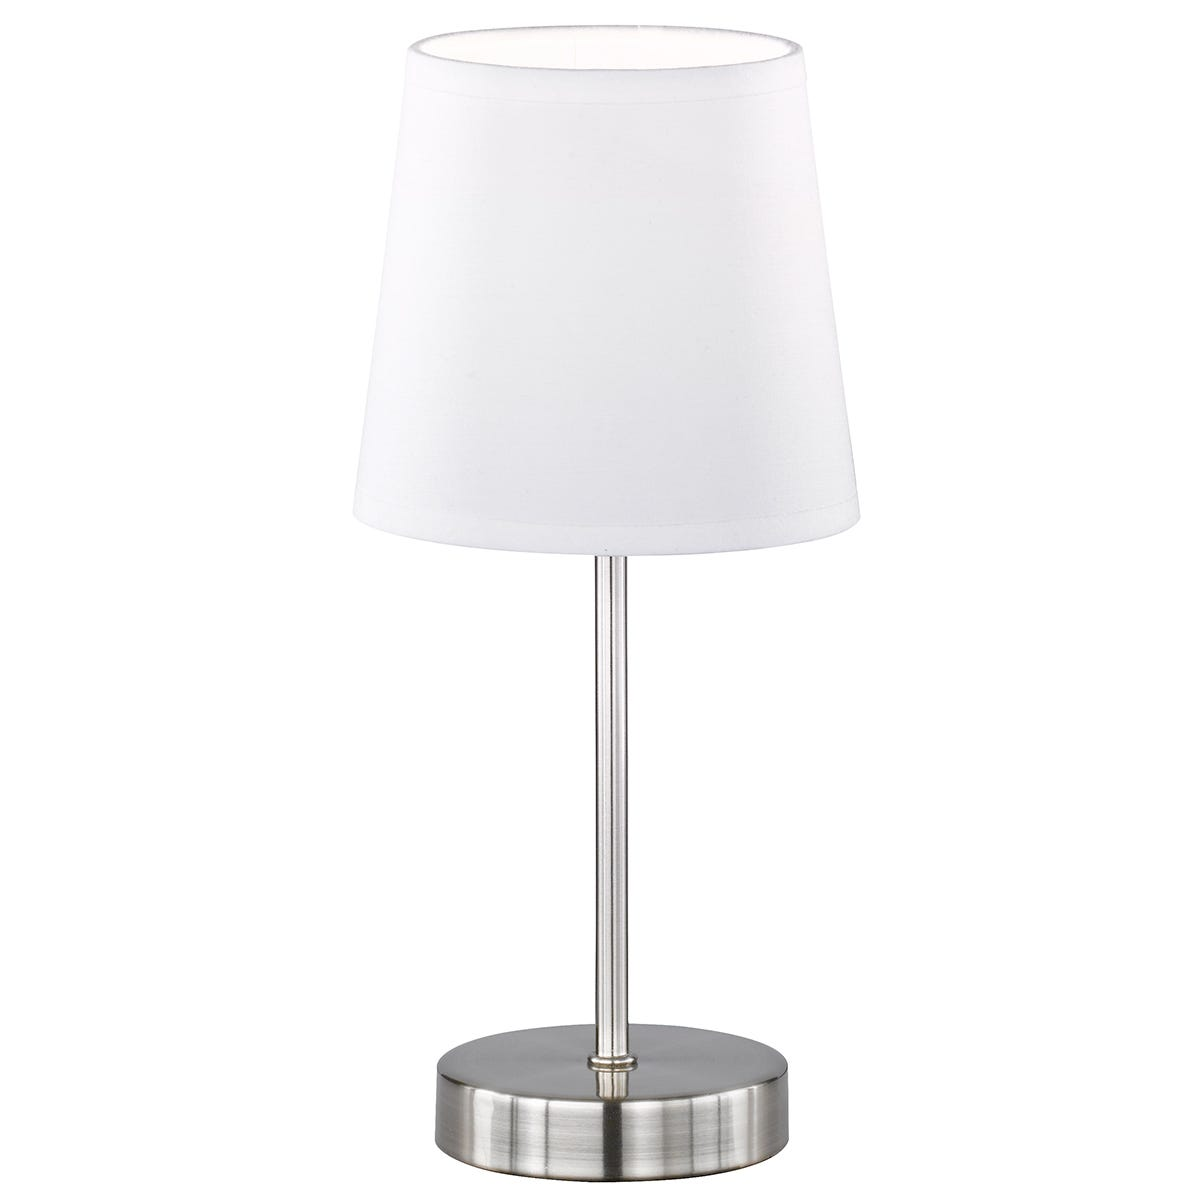 Action Cesena Table Lamp with White Shade - Nickel Matt Finished